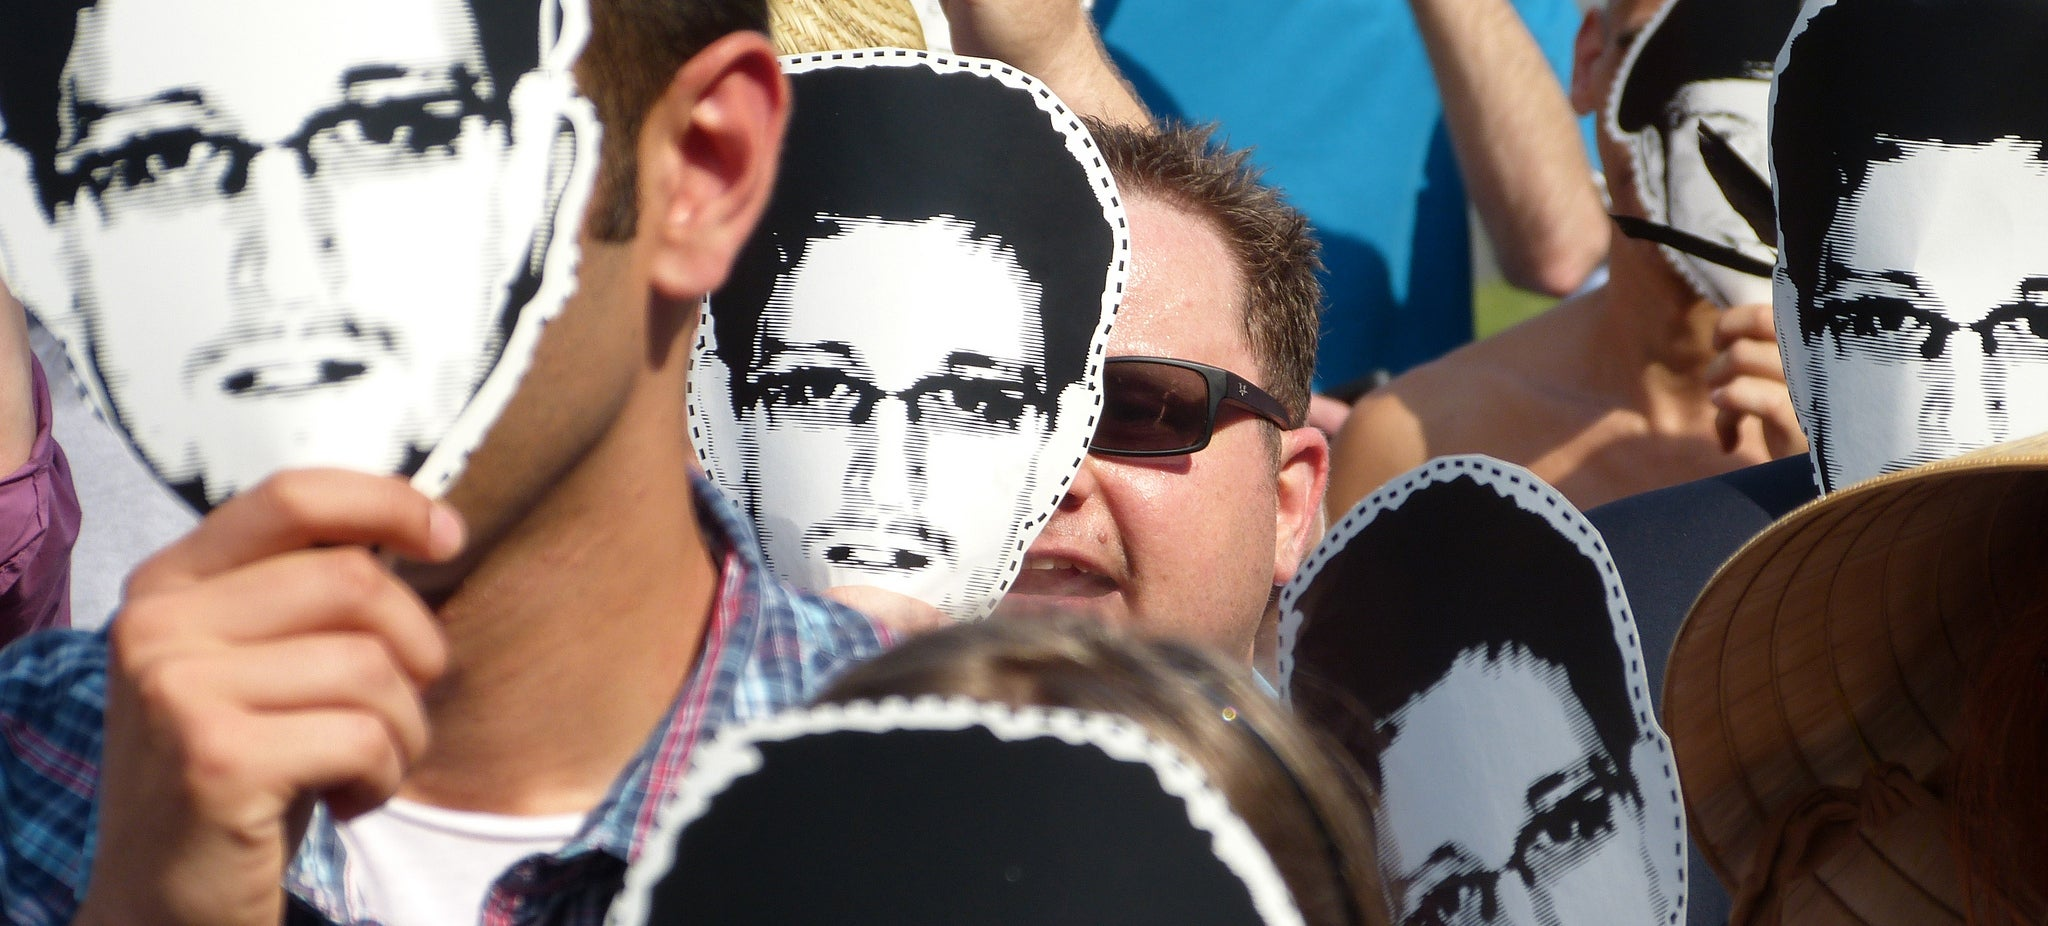 The Government Revealed That Lavabit Shut Down Because of Edward Snowden